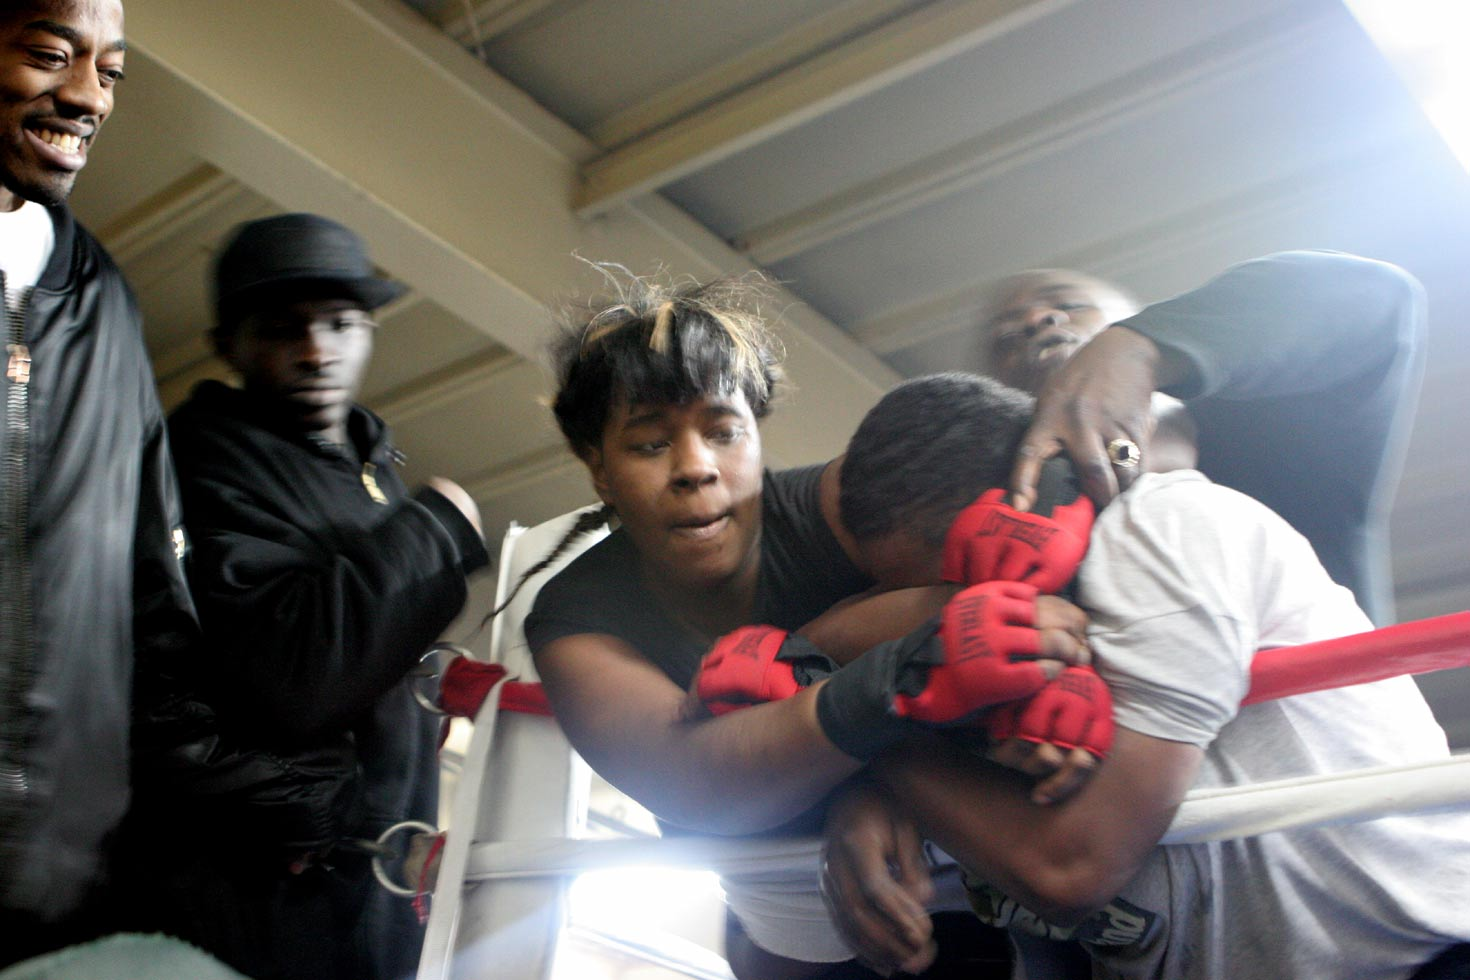 The girls fight in martial arts training gloves.